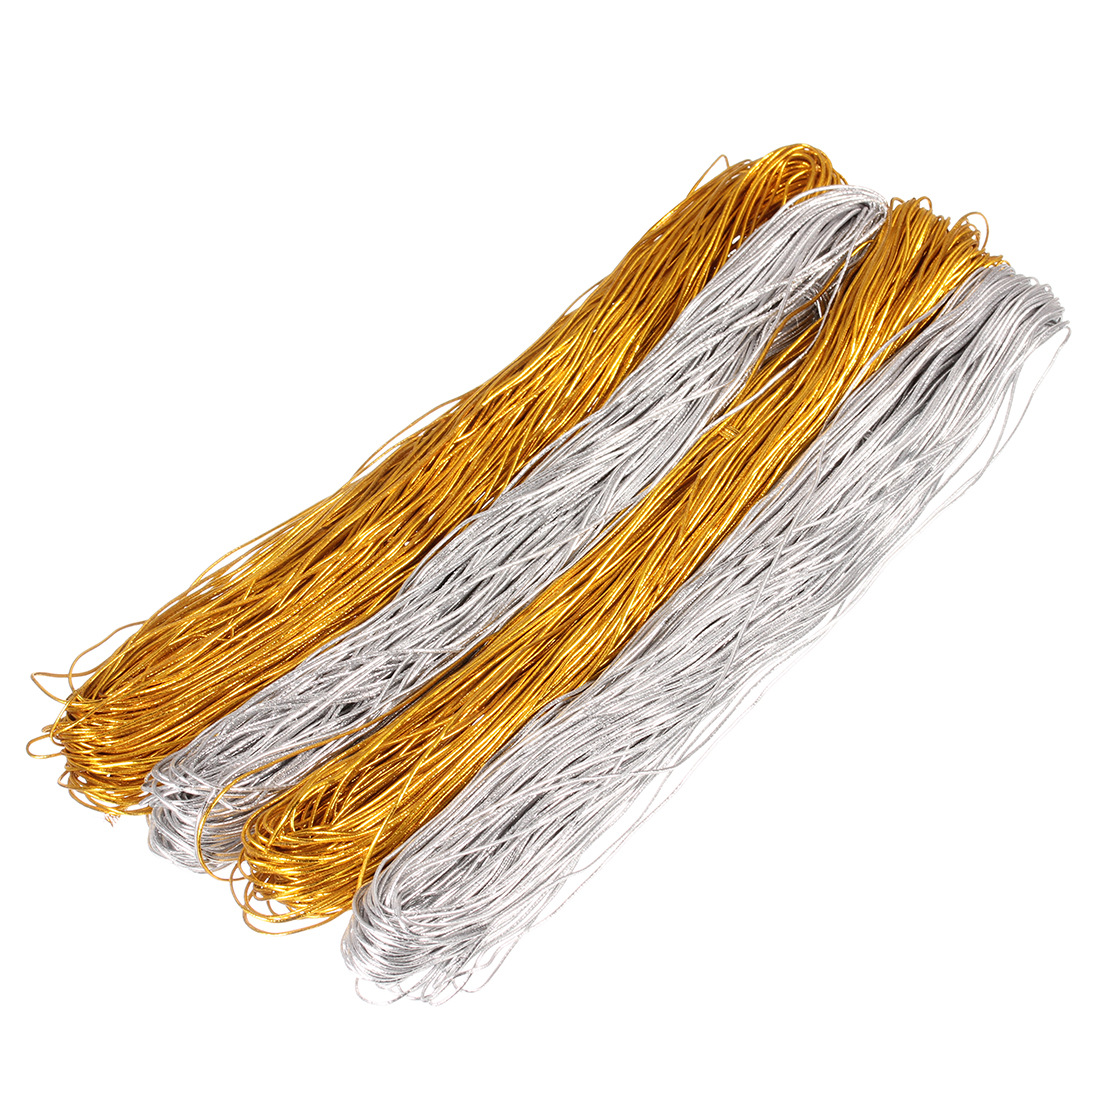 1 Mm Gold Silver Thread Elastic Rope For Jewelry Tag Elastic Line Elastic Rope Core Rope 2 Colors Length 50 M